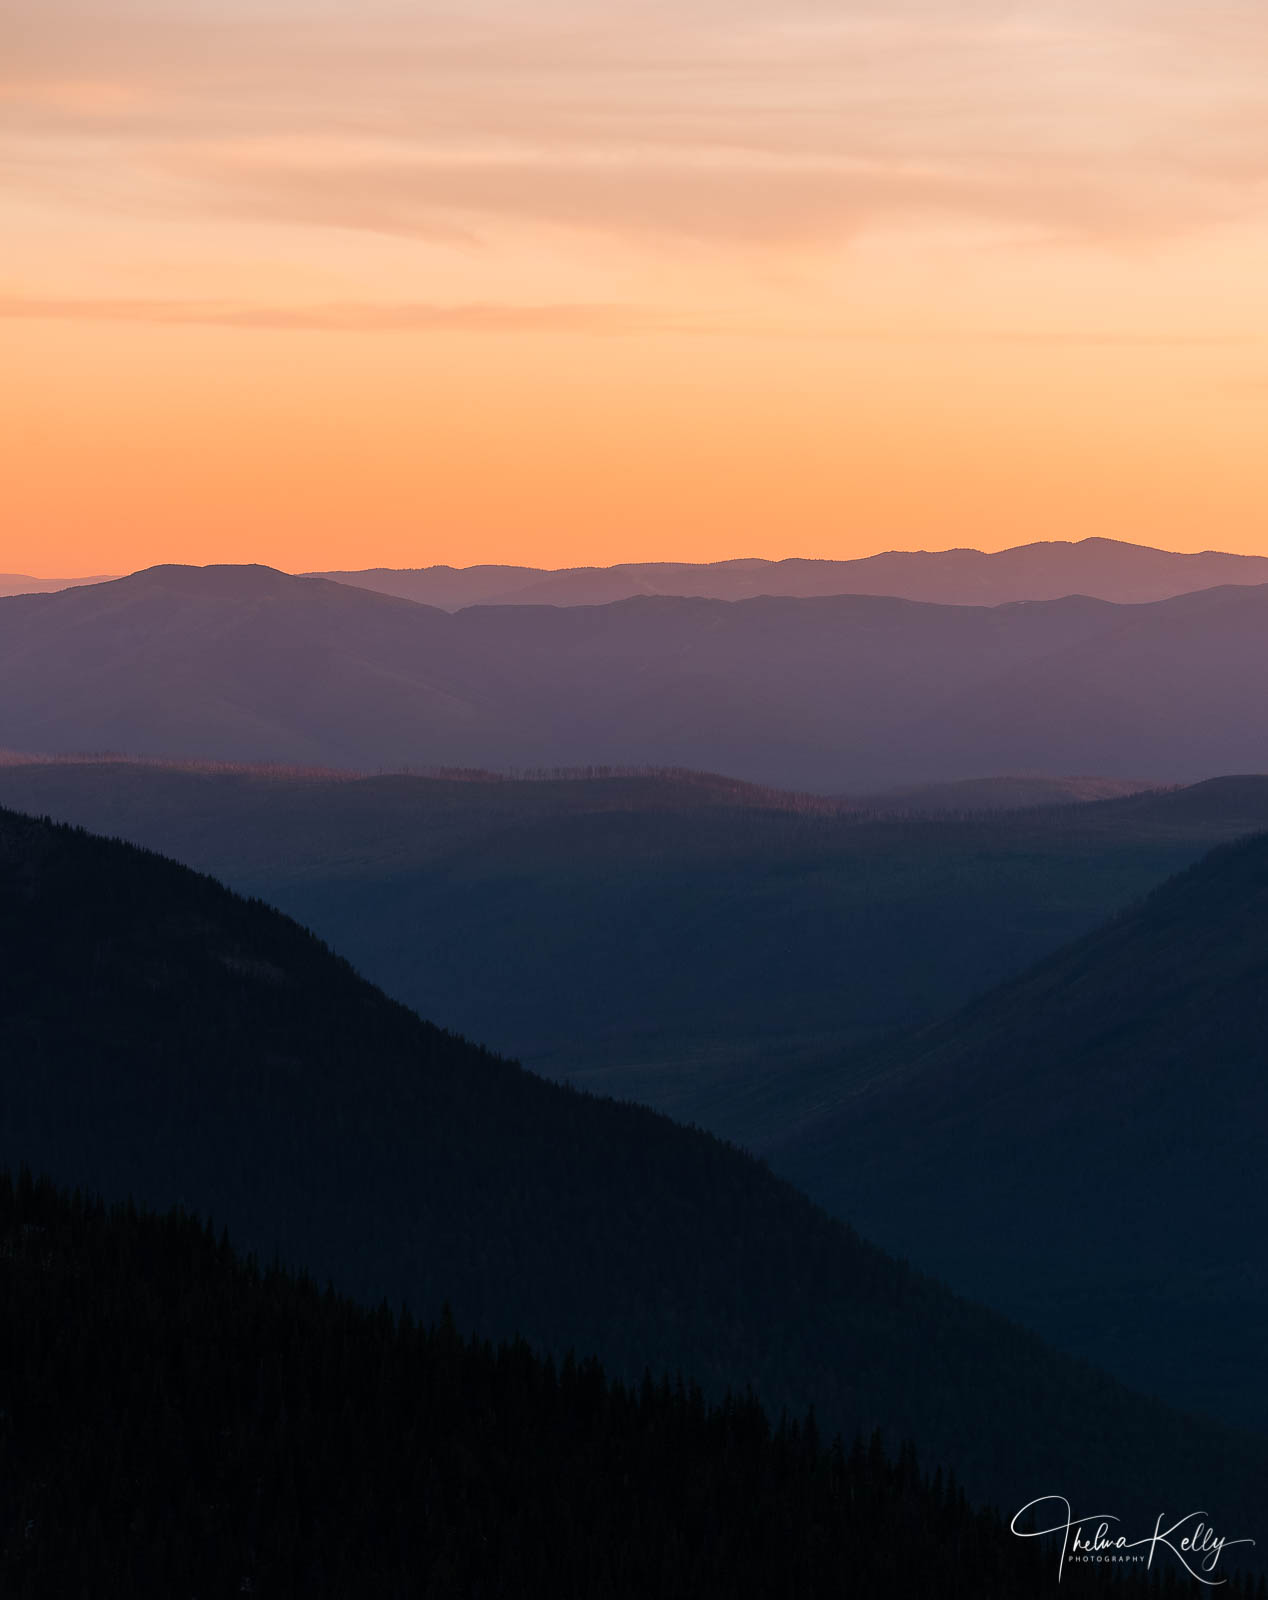 I stood there at sunset overlooking the mountains and taking photos every few seconds, as I watched the sky turn into pastel...